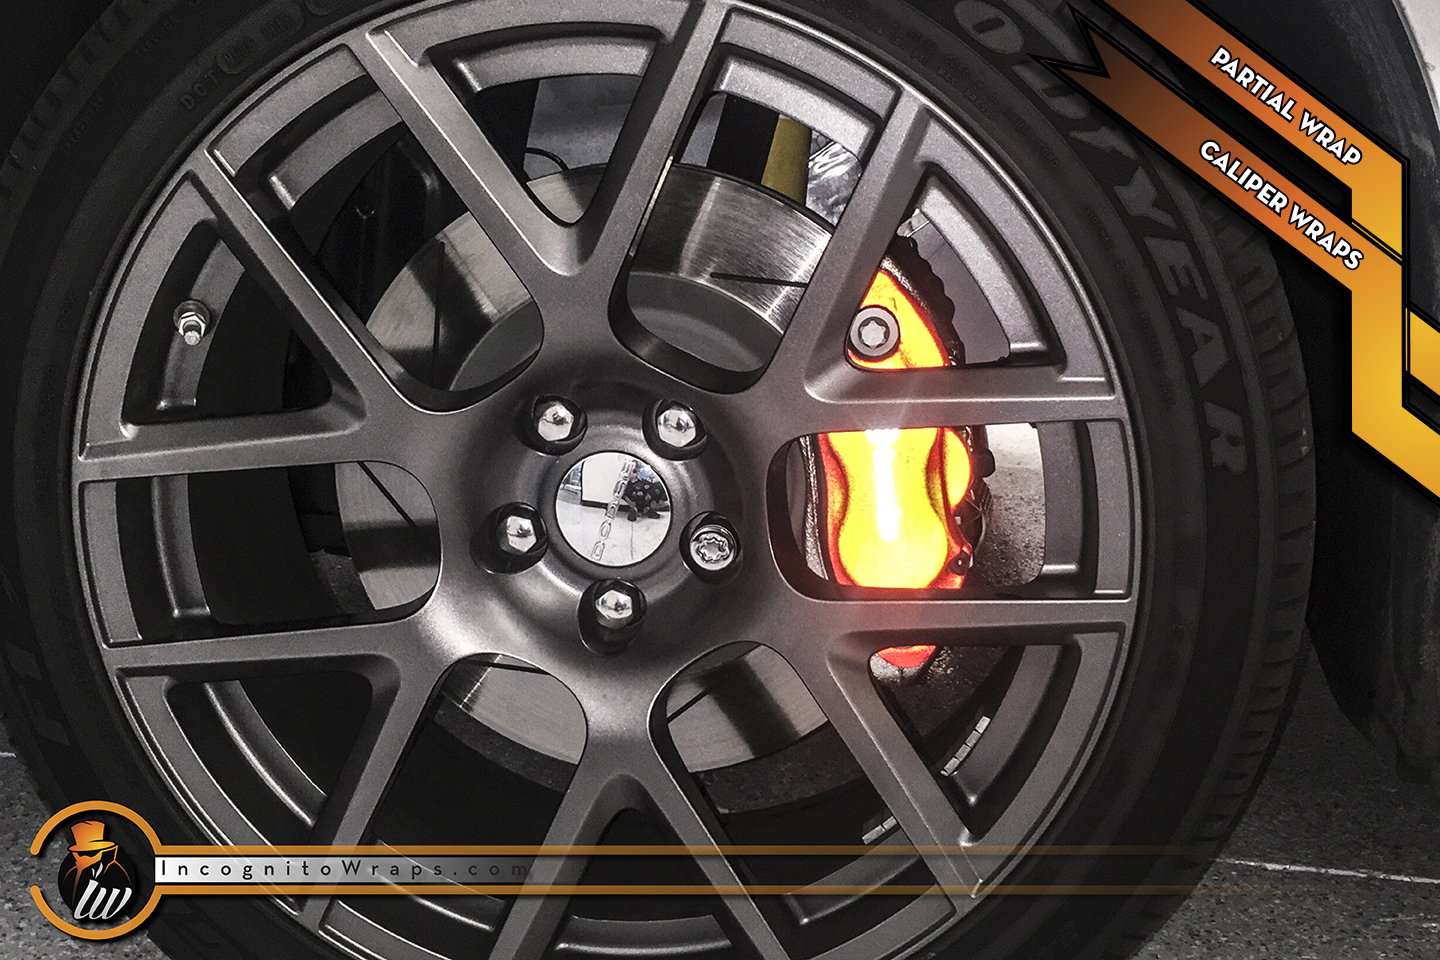 Dodge Challenger - Reflective Red Calipers and Carbon Fiber Accents